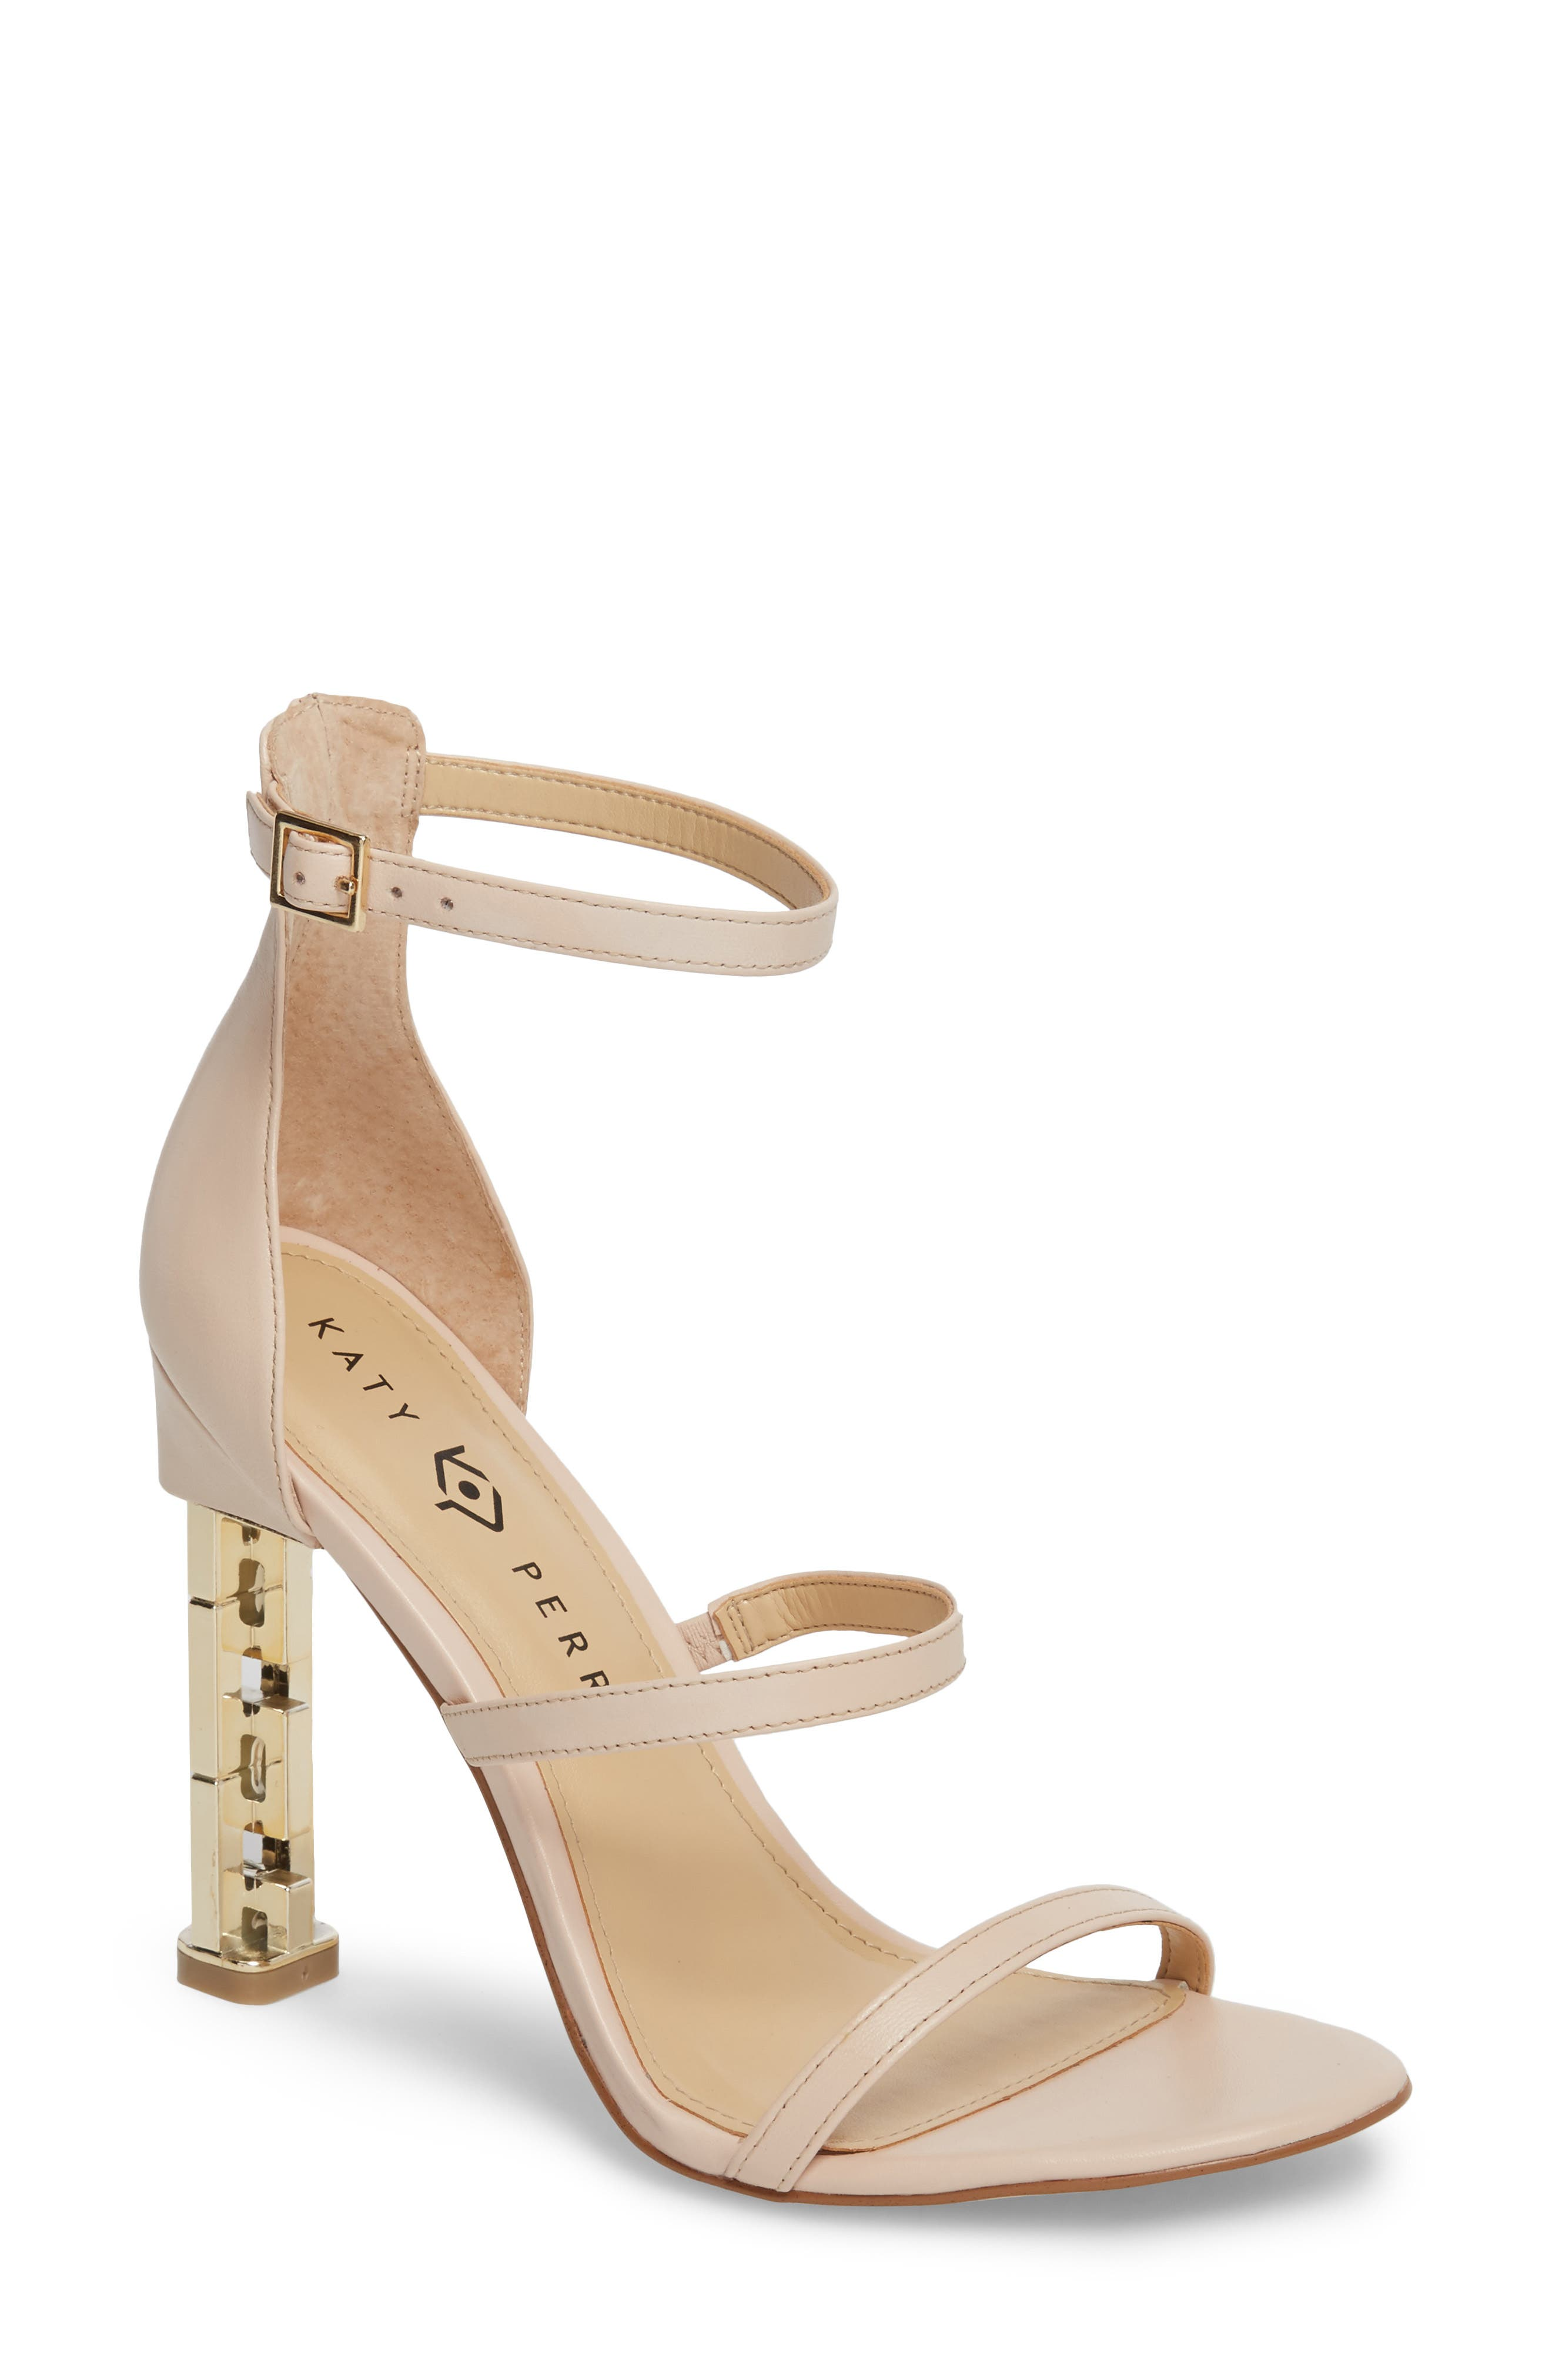 Katy perry Women's Ankle Strap Sandal